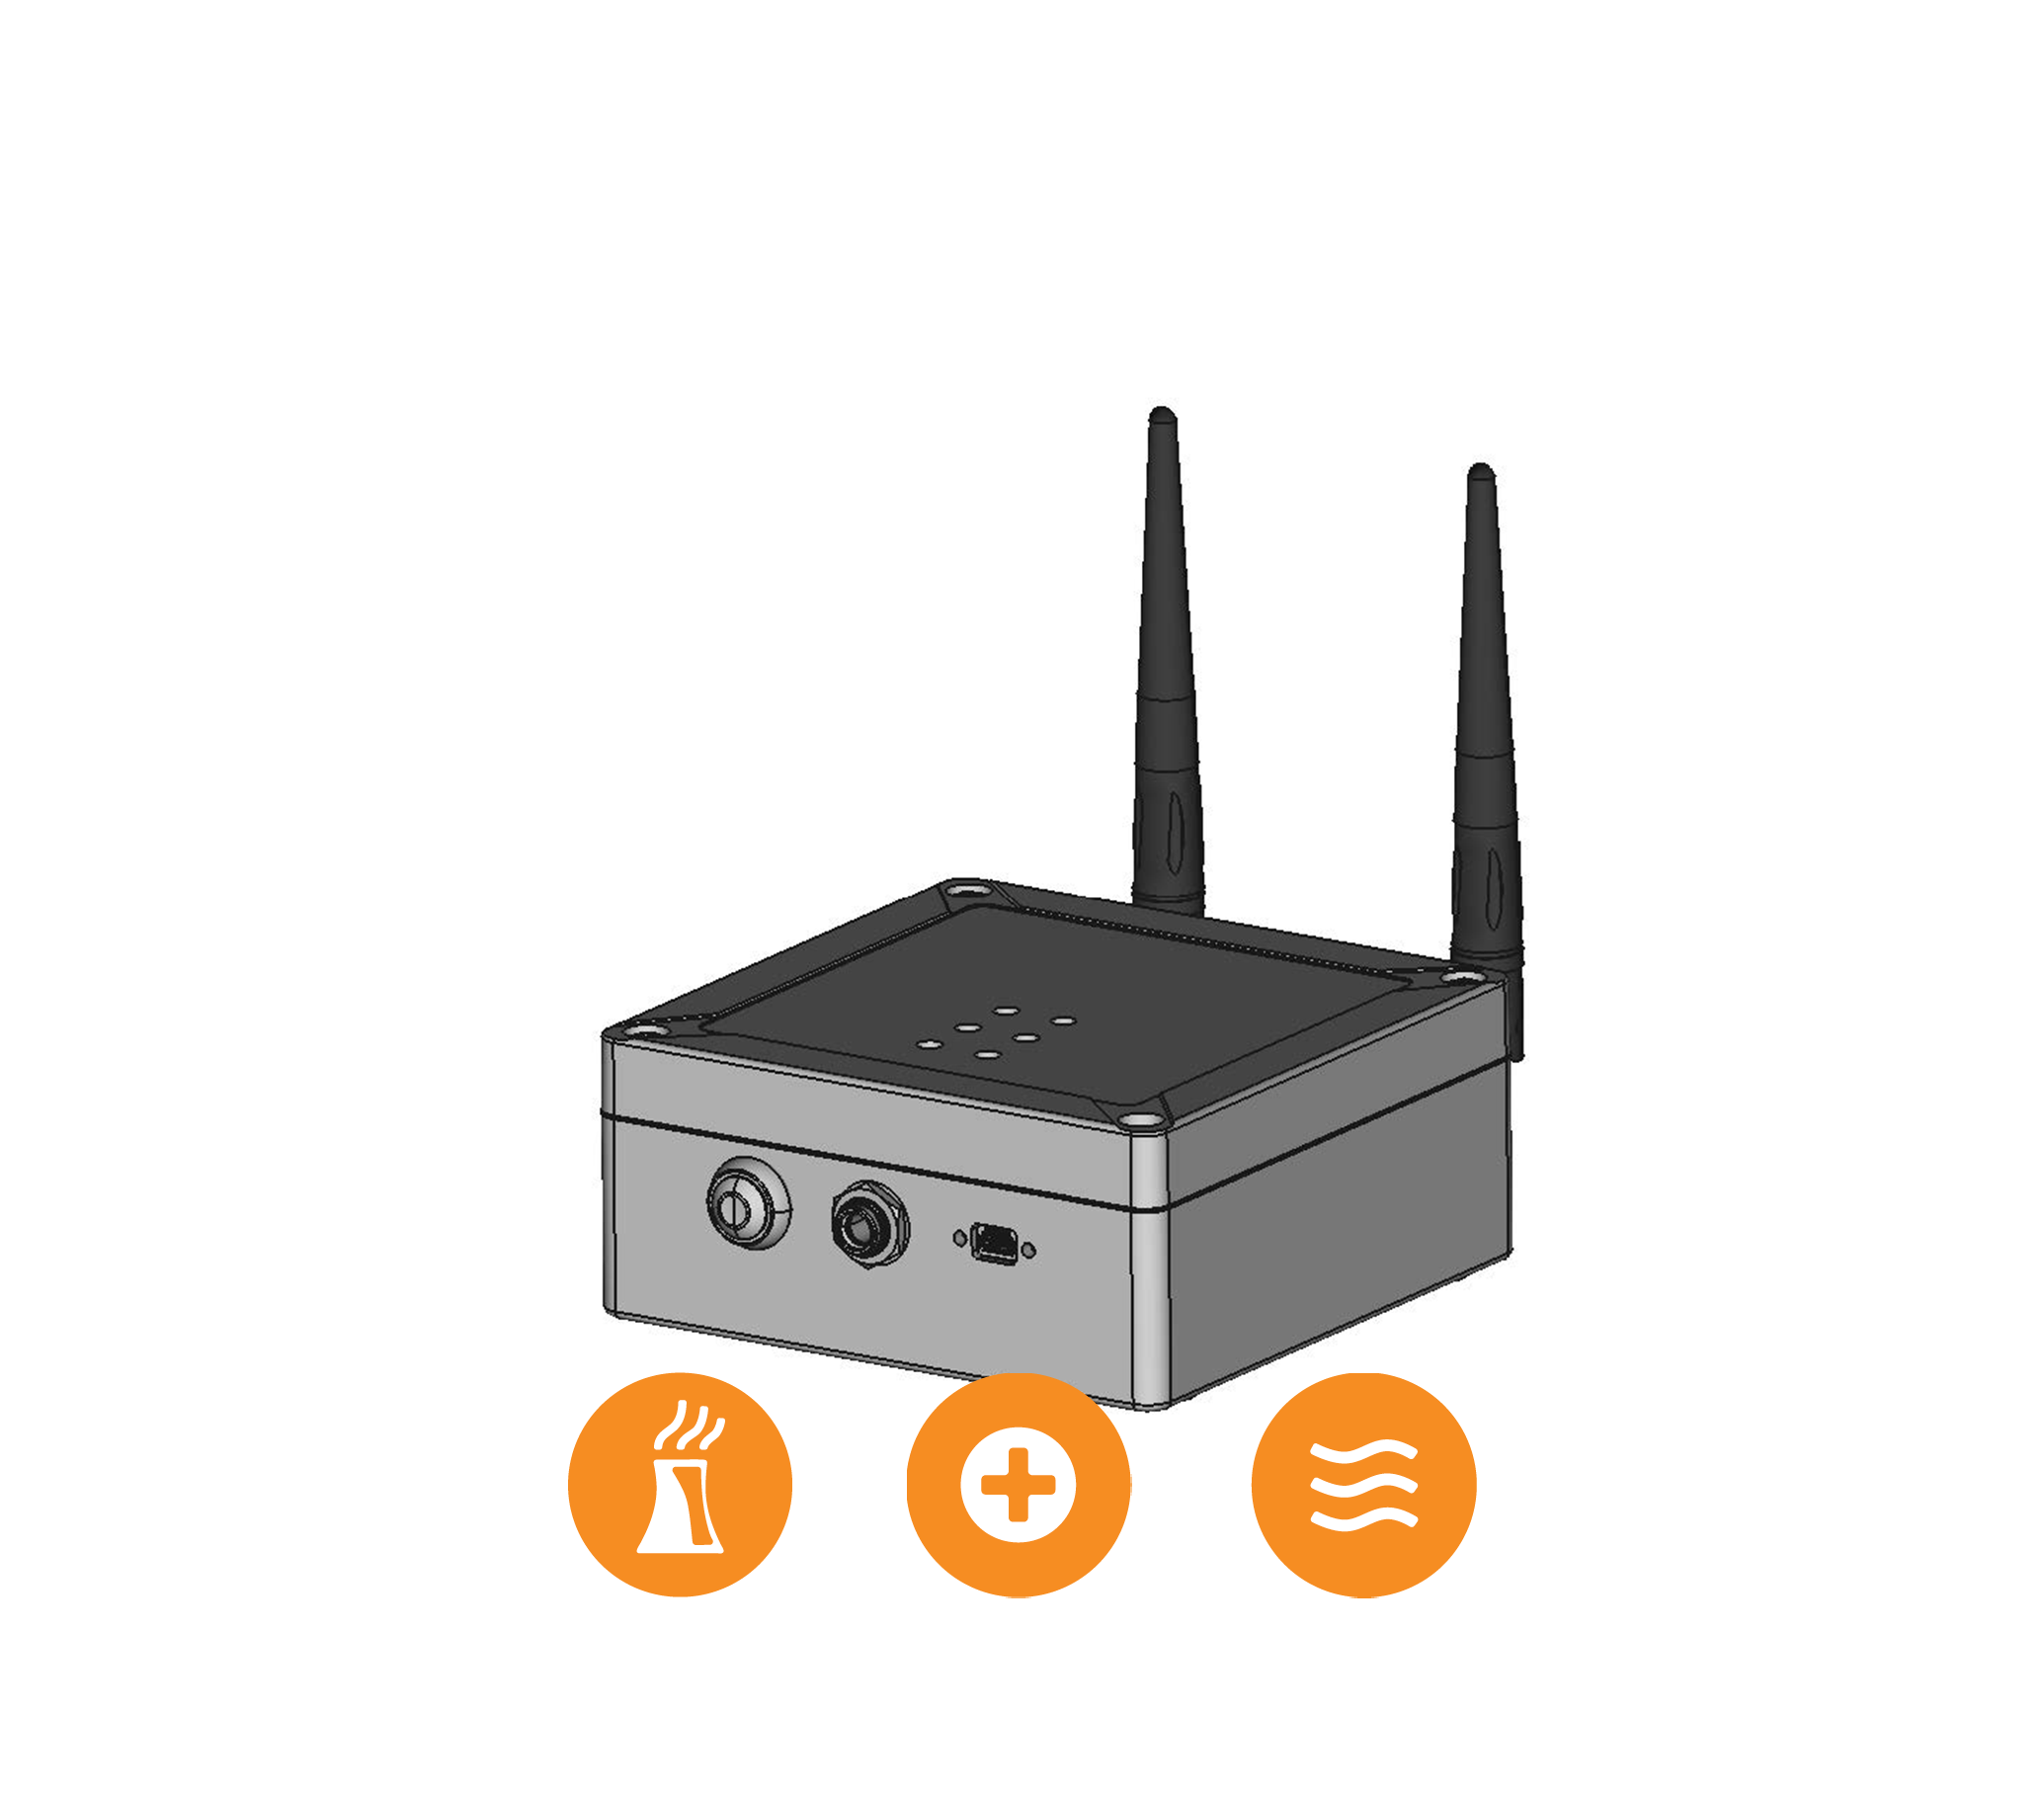 LINK2-Repeater - The Link2-Repeater is a wireless repeater radio that combines two wireless transceivers to increase the wireless range of in-field wireless devices, sensors and…